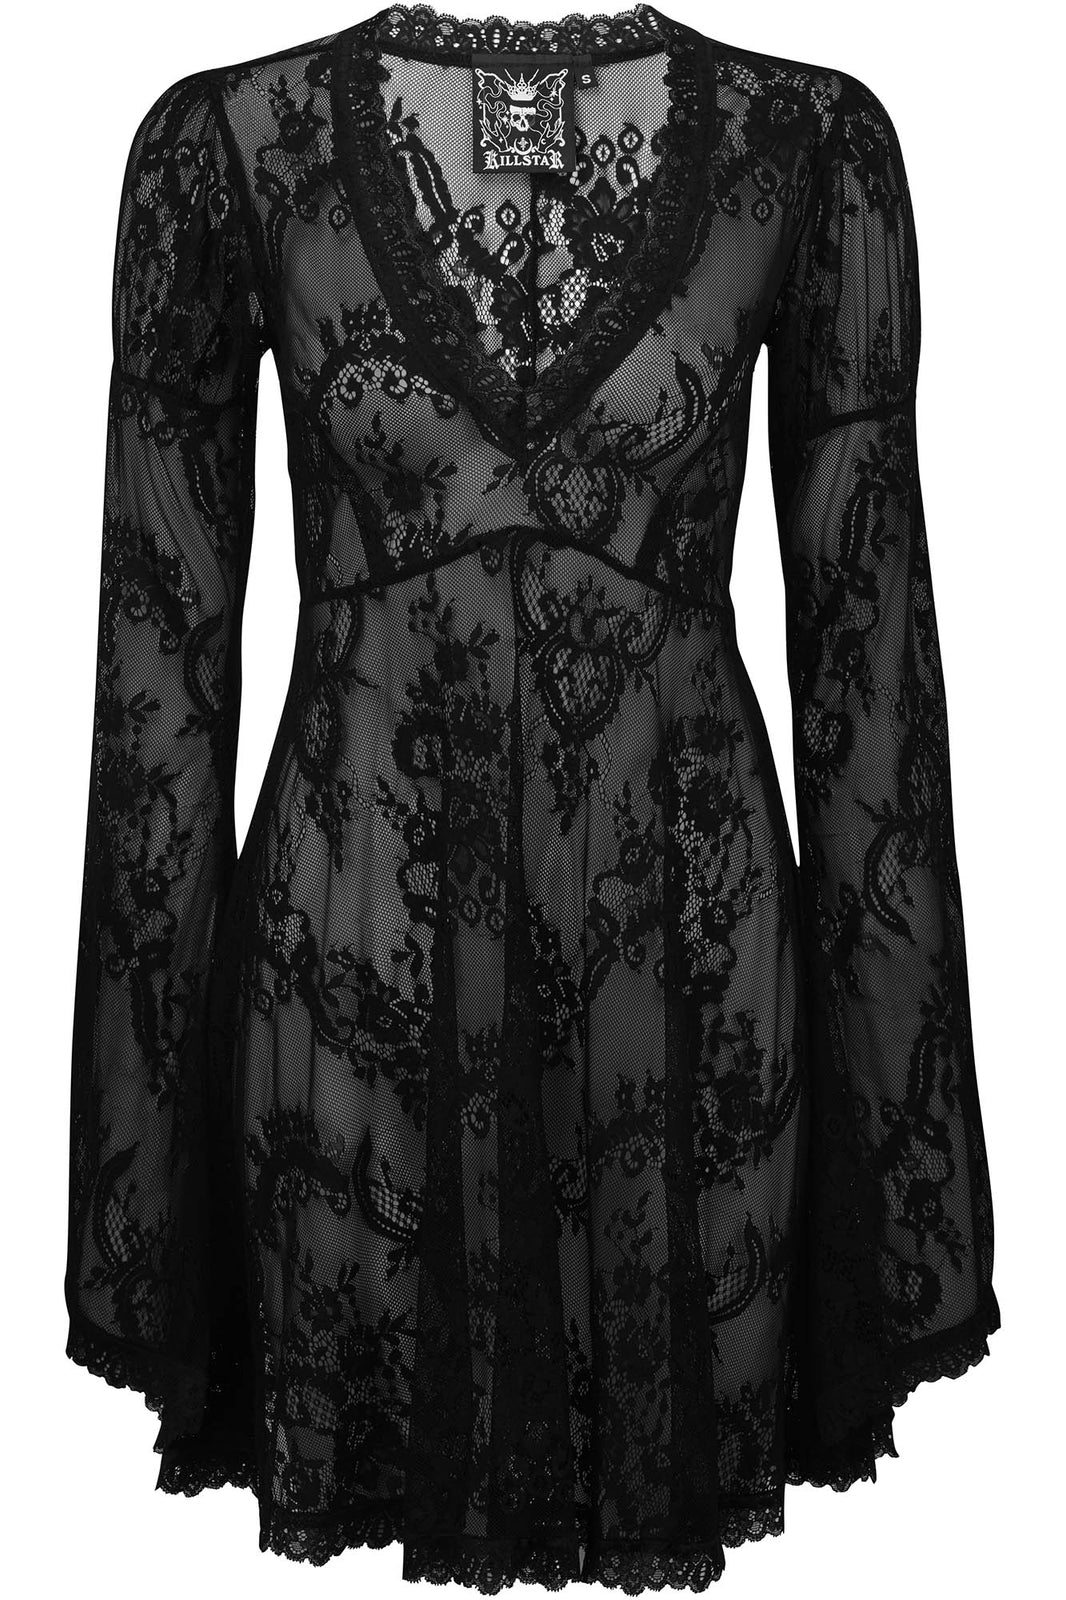 Vesta Lace Dress